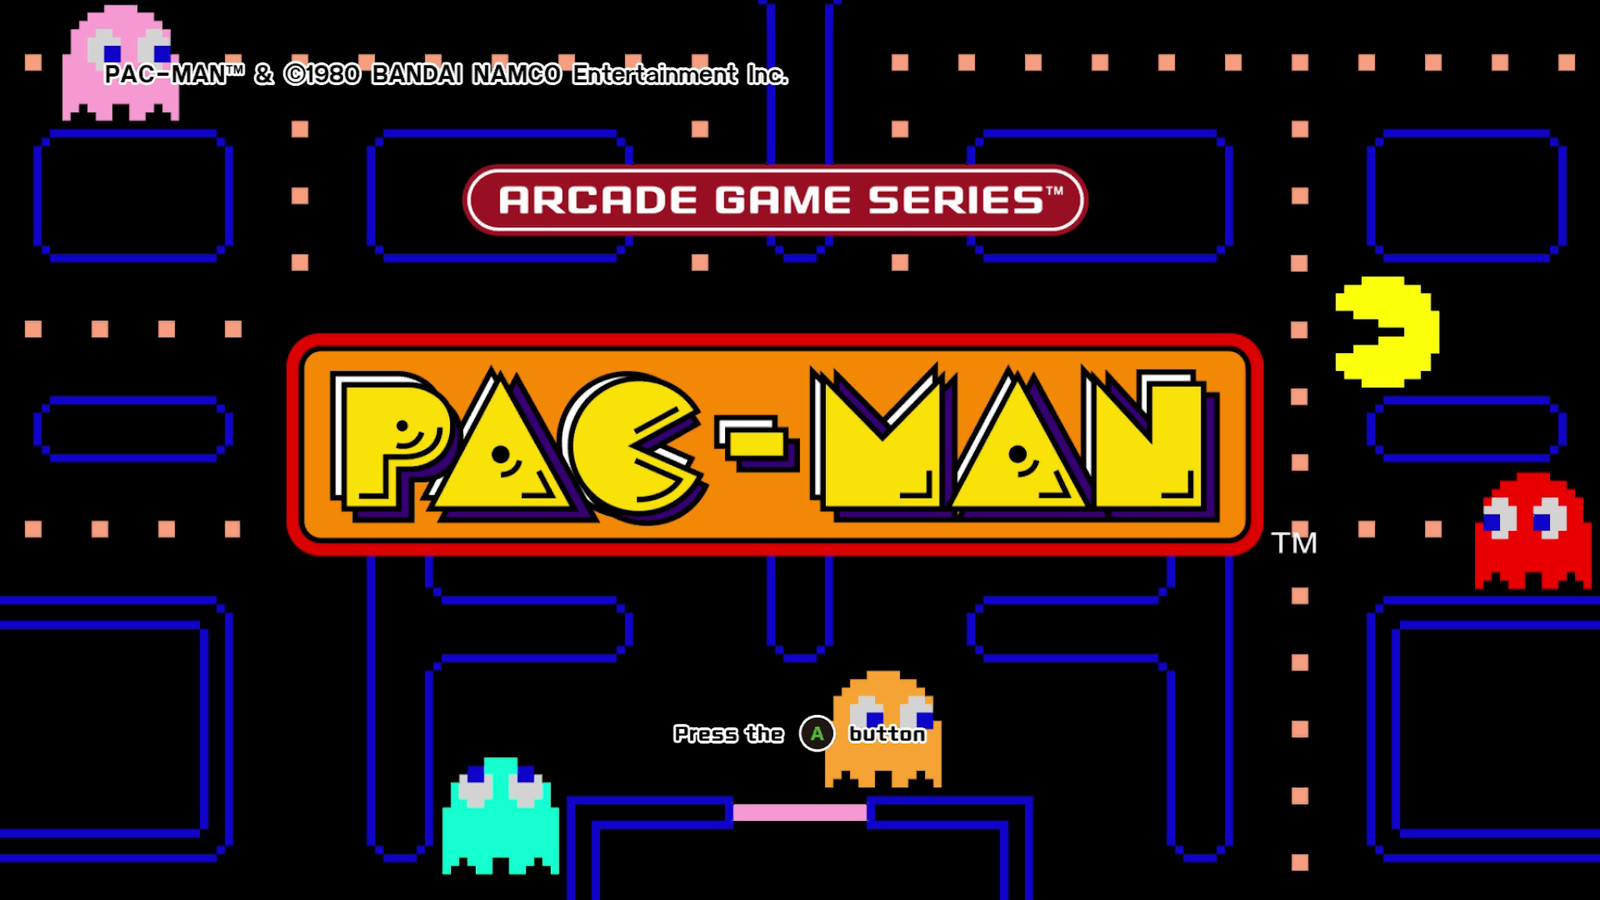 Arcade-Game-Series-Pac-Man-Xbox-One-title-screen-main